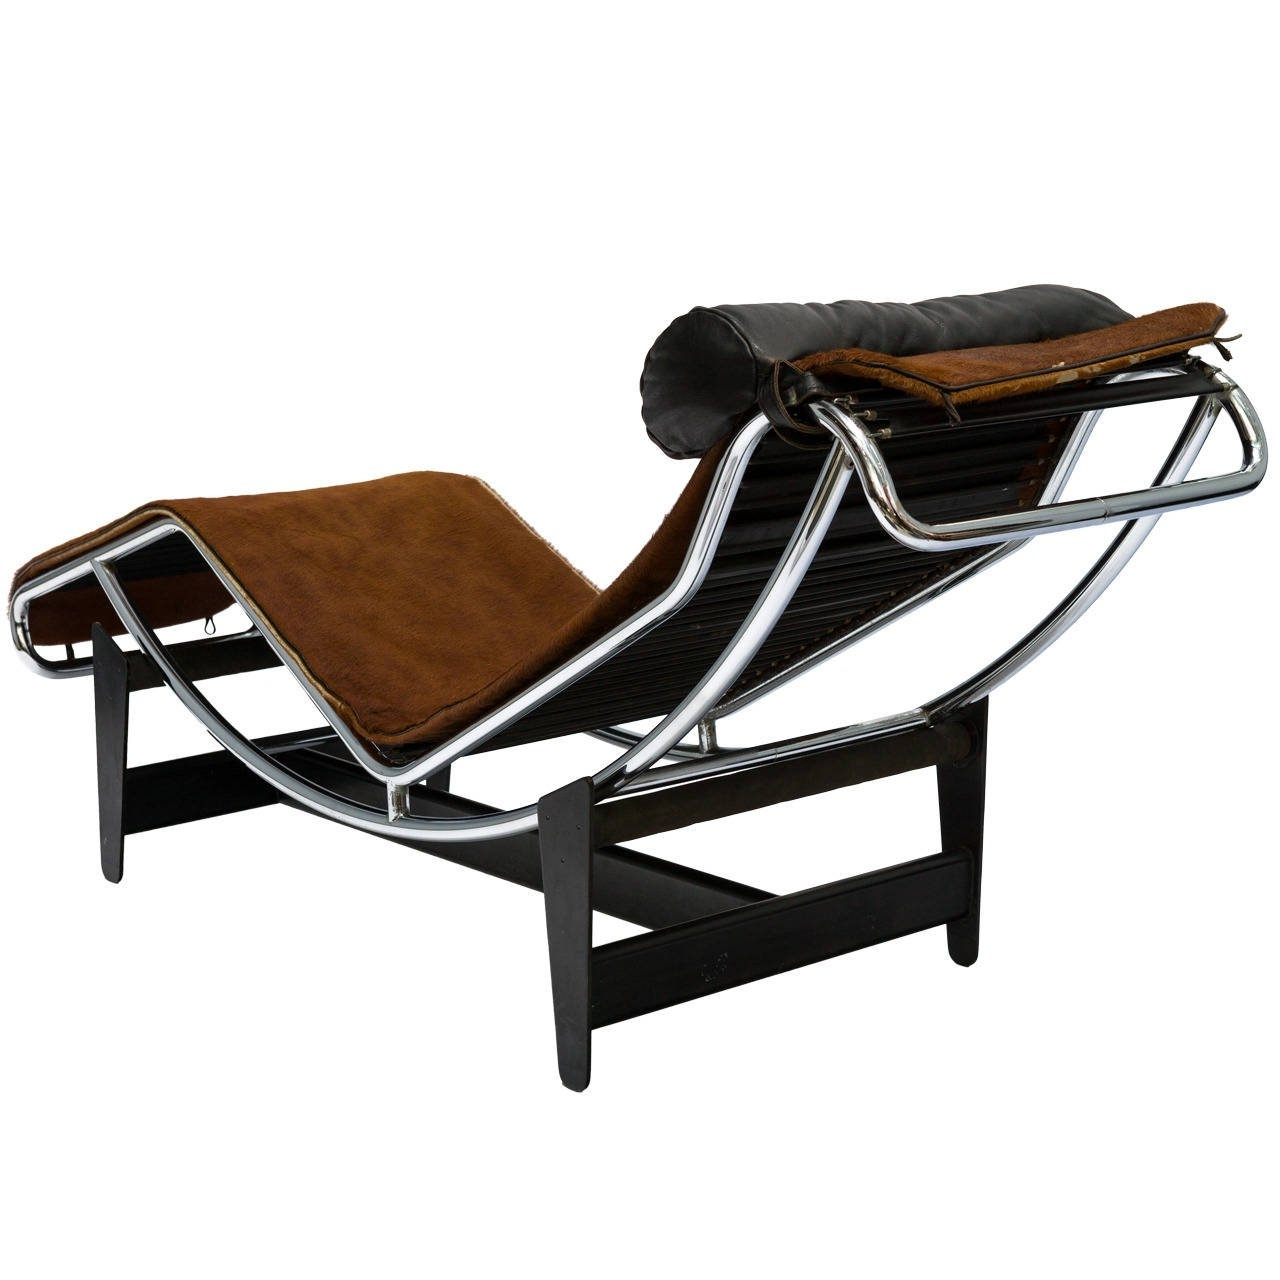 Favorite Le Corbusier Lc4 Chaise Lounge Chair In Cowhide For Sale At 1Stdibs With Le Corbusier Chaises (View 15 of 15)